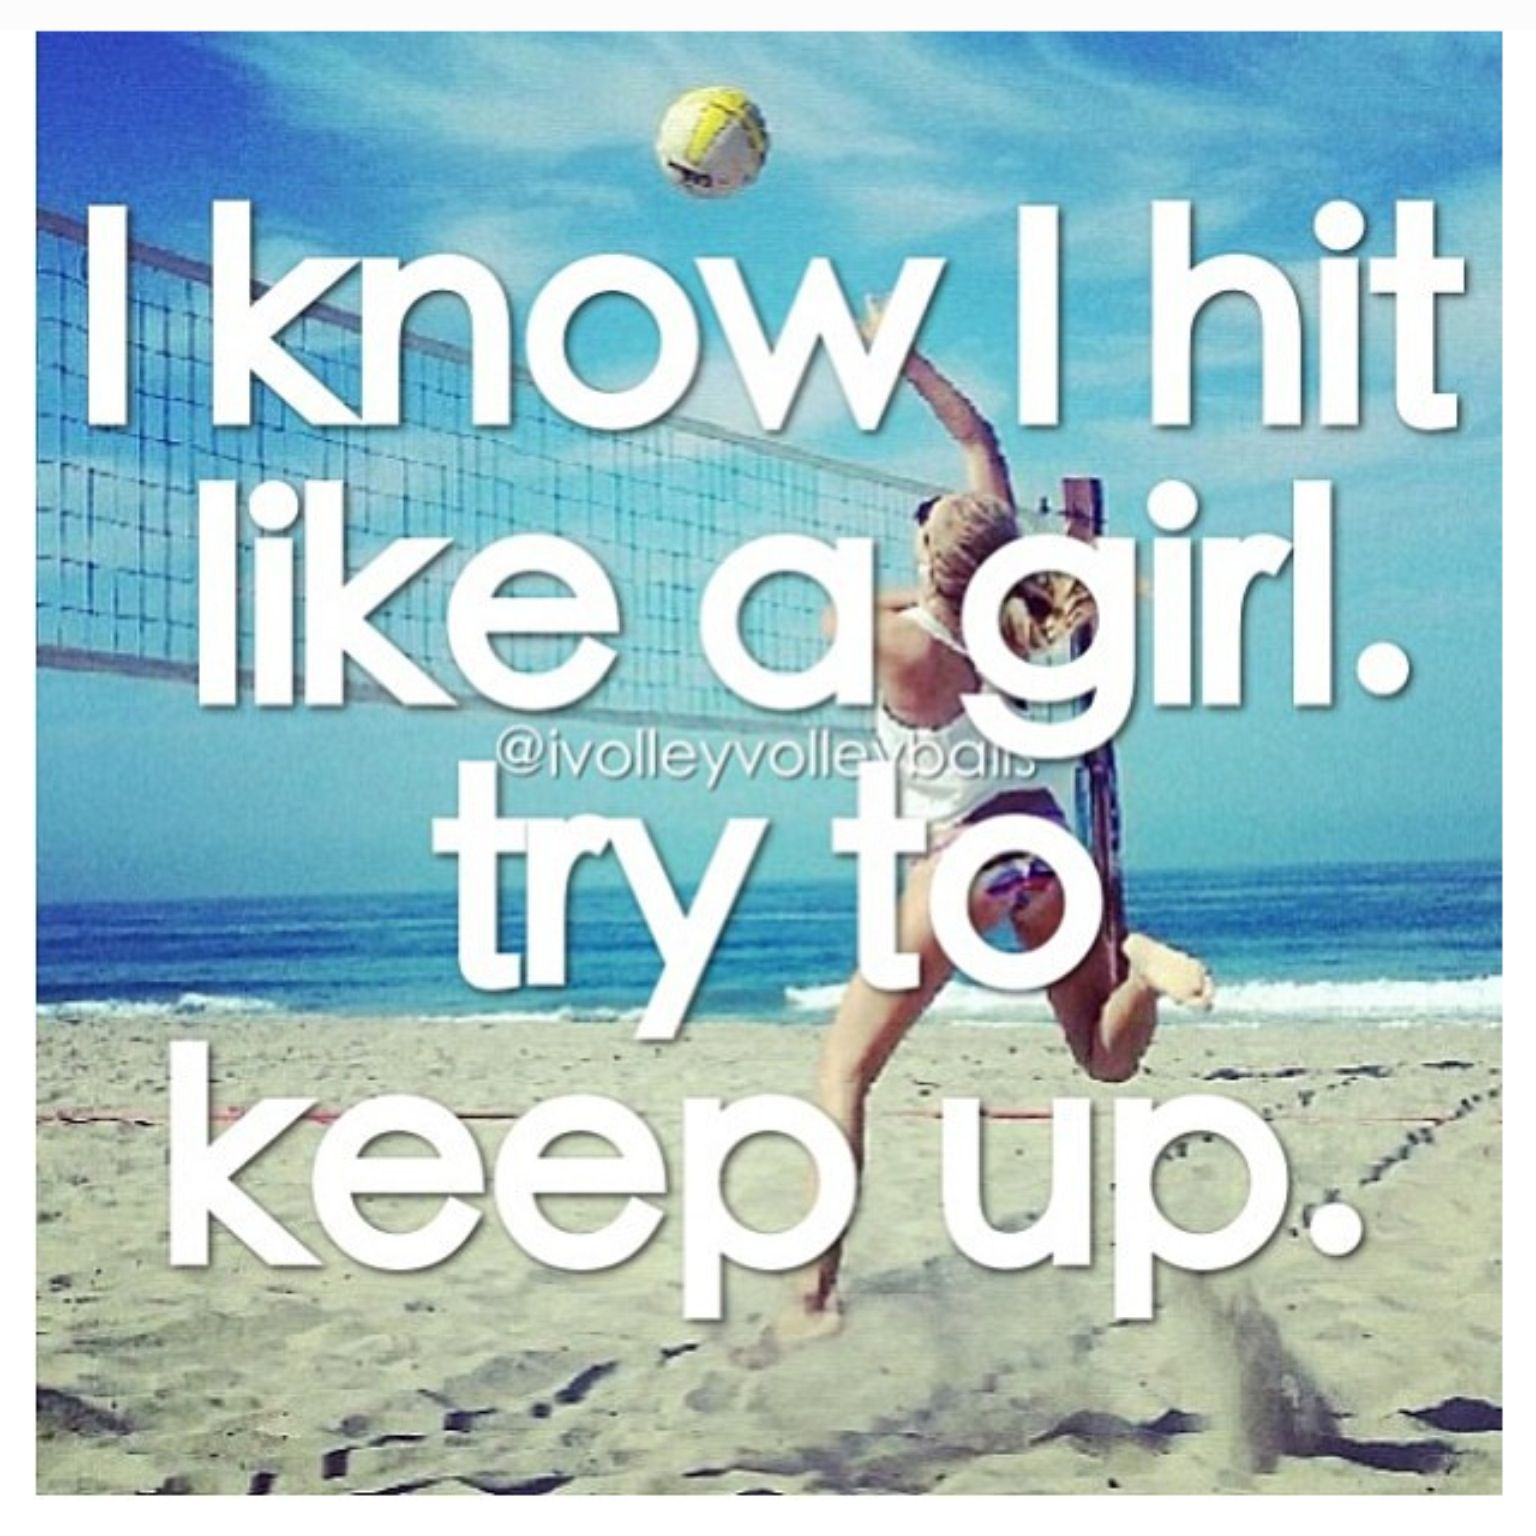 Volleyball Quotes Volleyball Quotes Volleyball Humor Volleyball